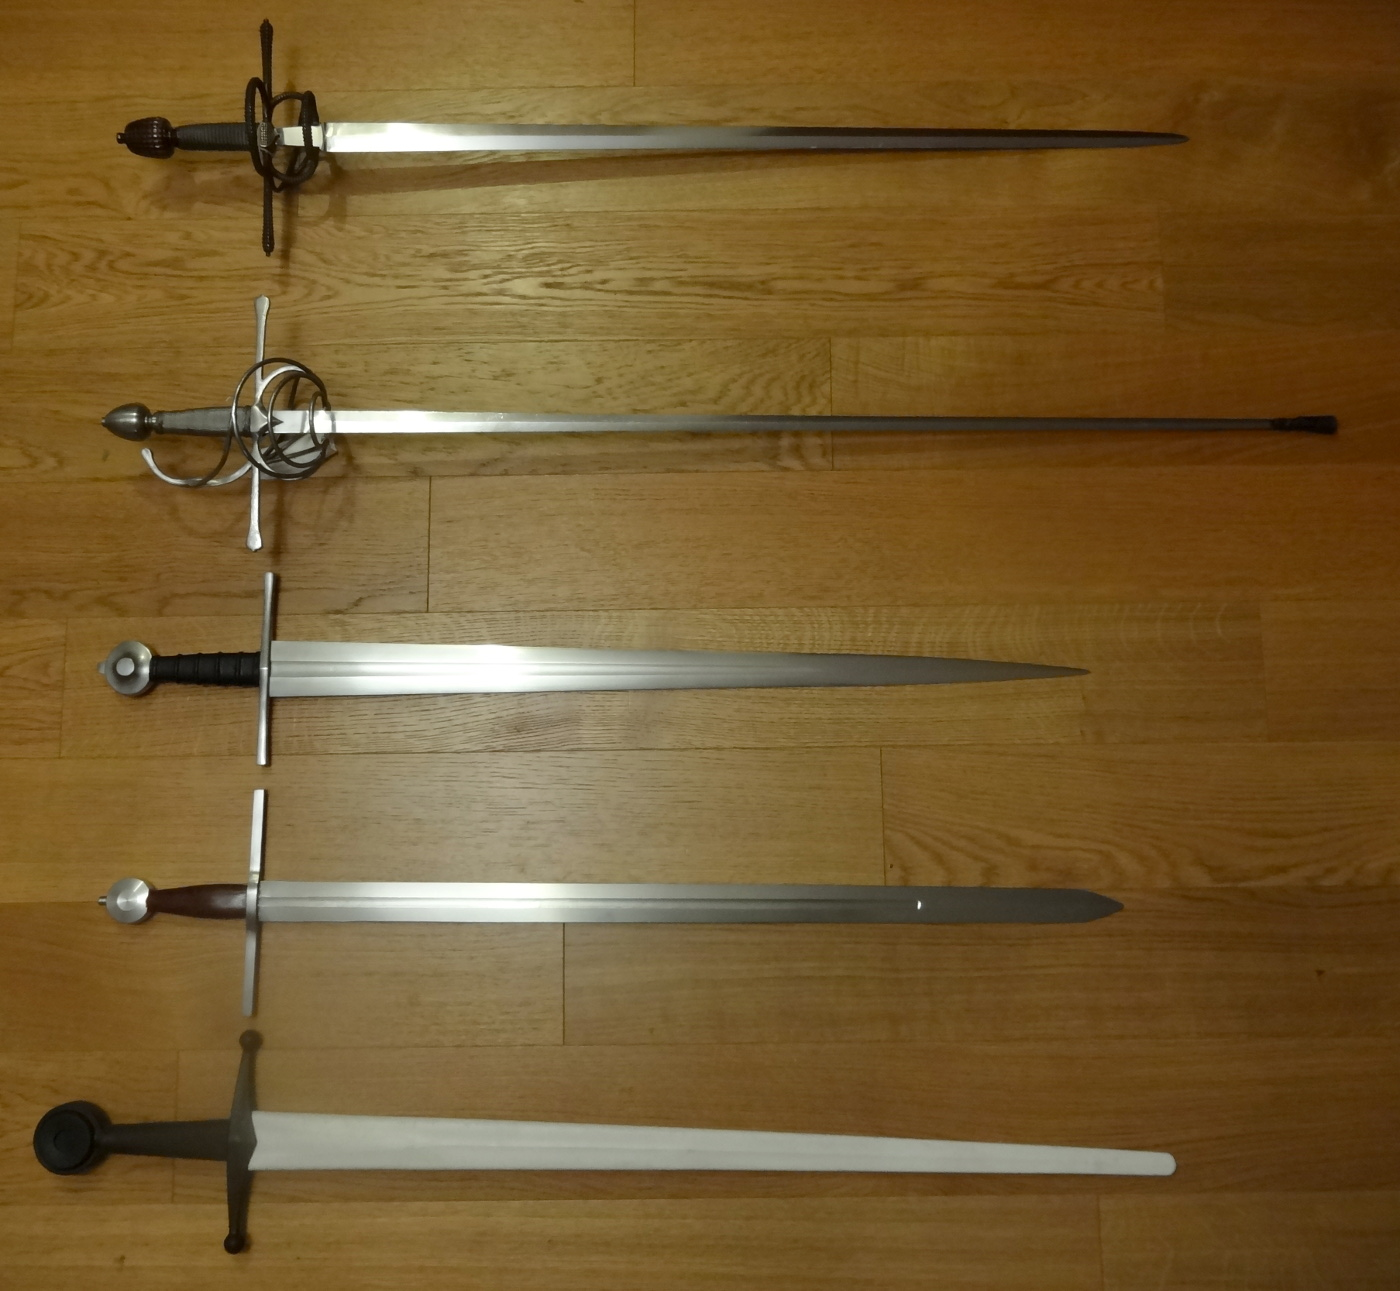 Visual Representation Of Mass Distribution Ensis Sub Caelo Sword Feel Free To Cut The Tip Make It More Swords A Group Photo Five